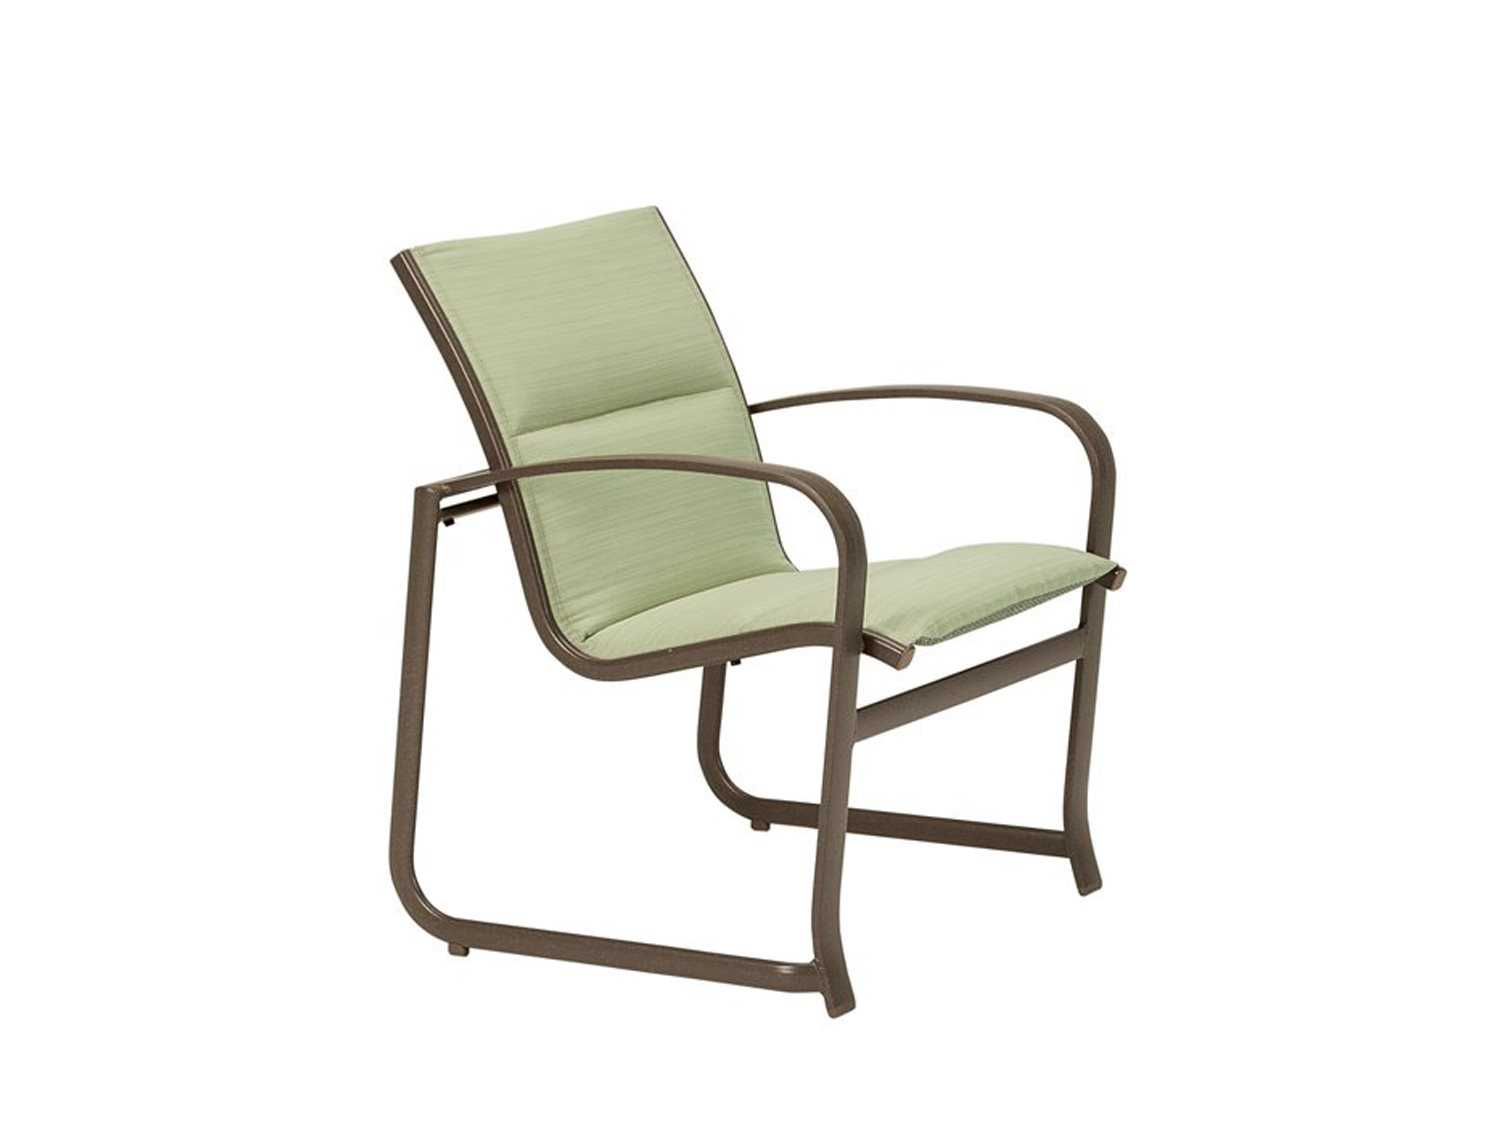 Tropitone Spinnaker Padded Sling Aluminum Dining Chair  : TP159924PS1zm from www.patioliving.com size 1500 x 1125 jpeg 35kB